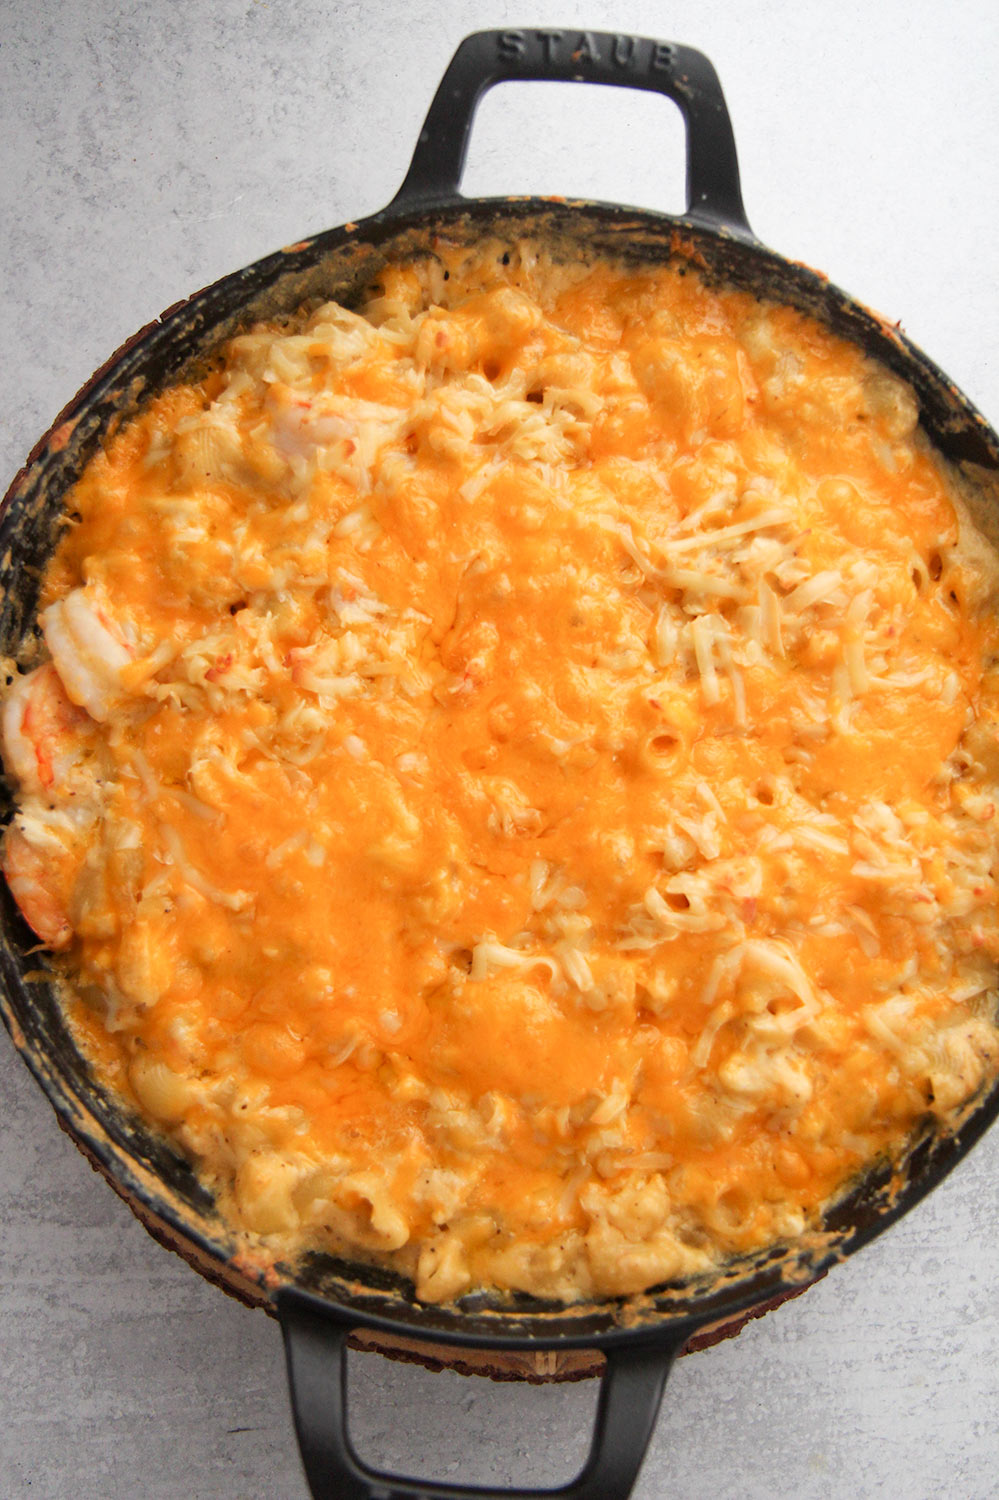 seafood macaroni and cheese in a black cast iron skillet.